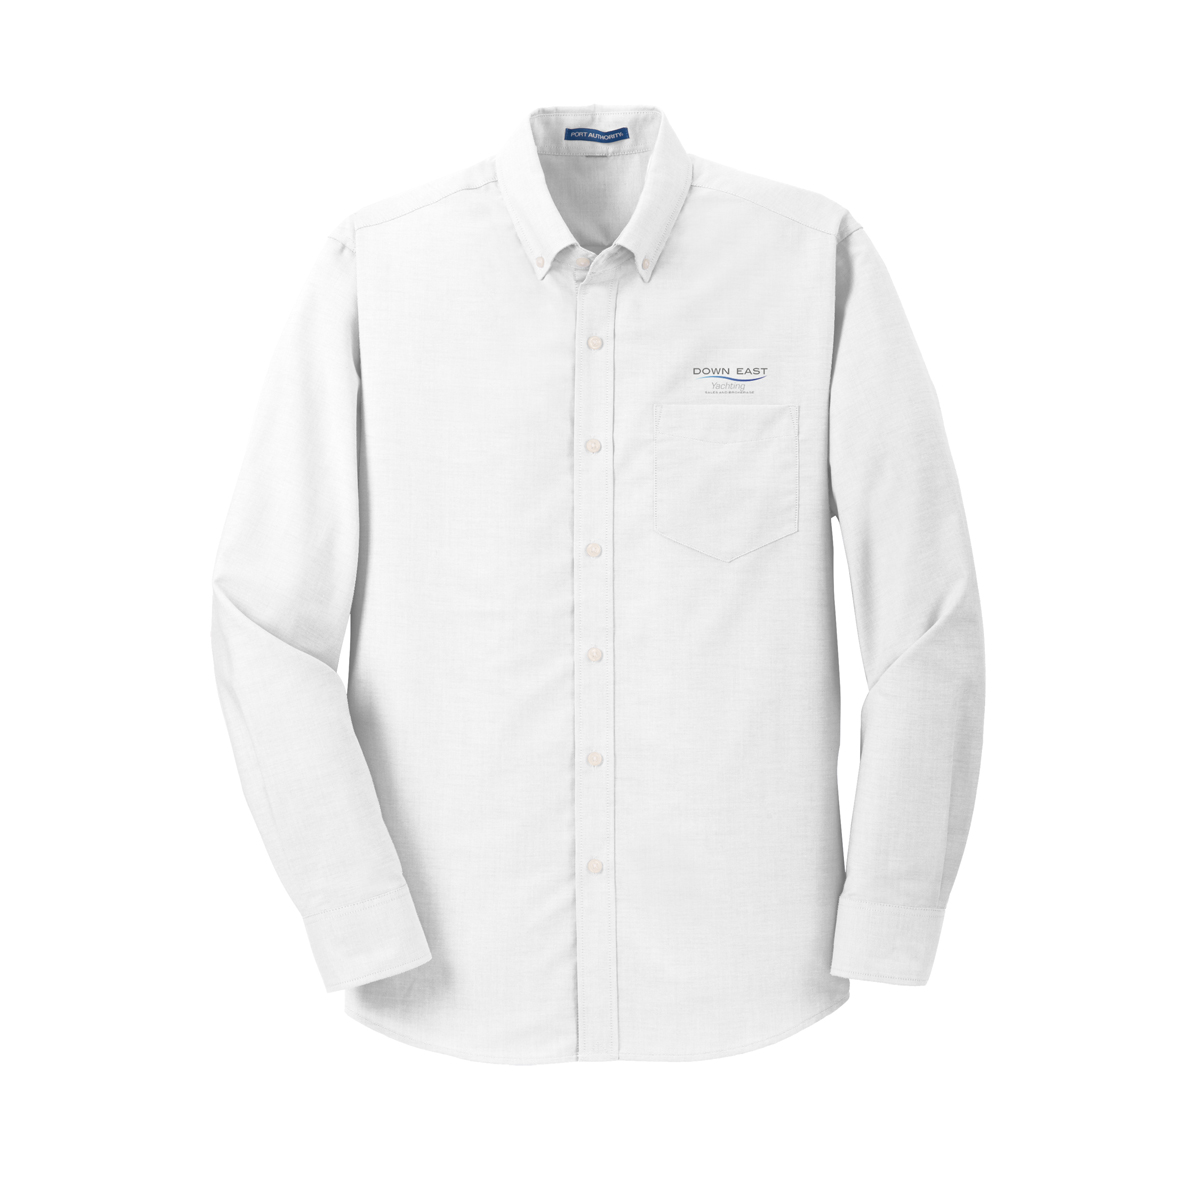 Down East Yachting - Men's Oxford Shirt